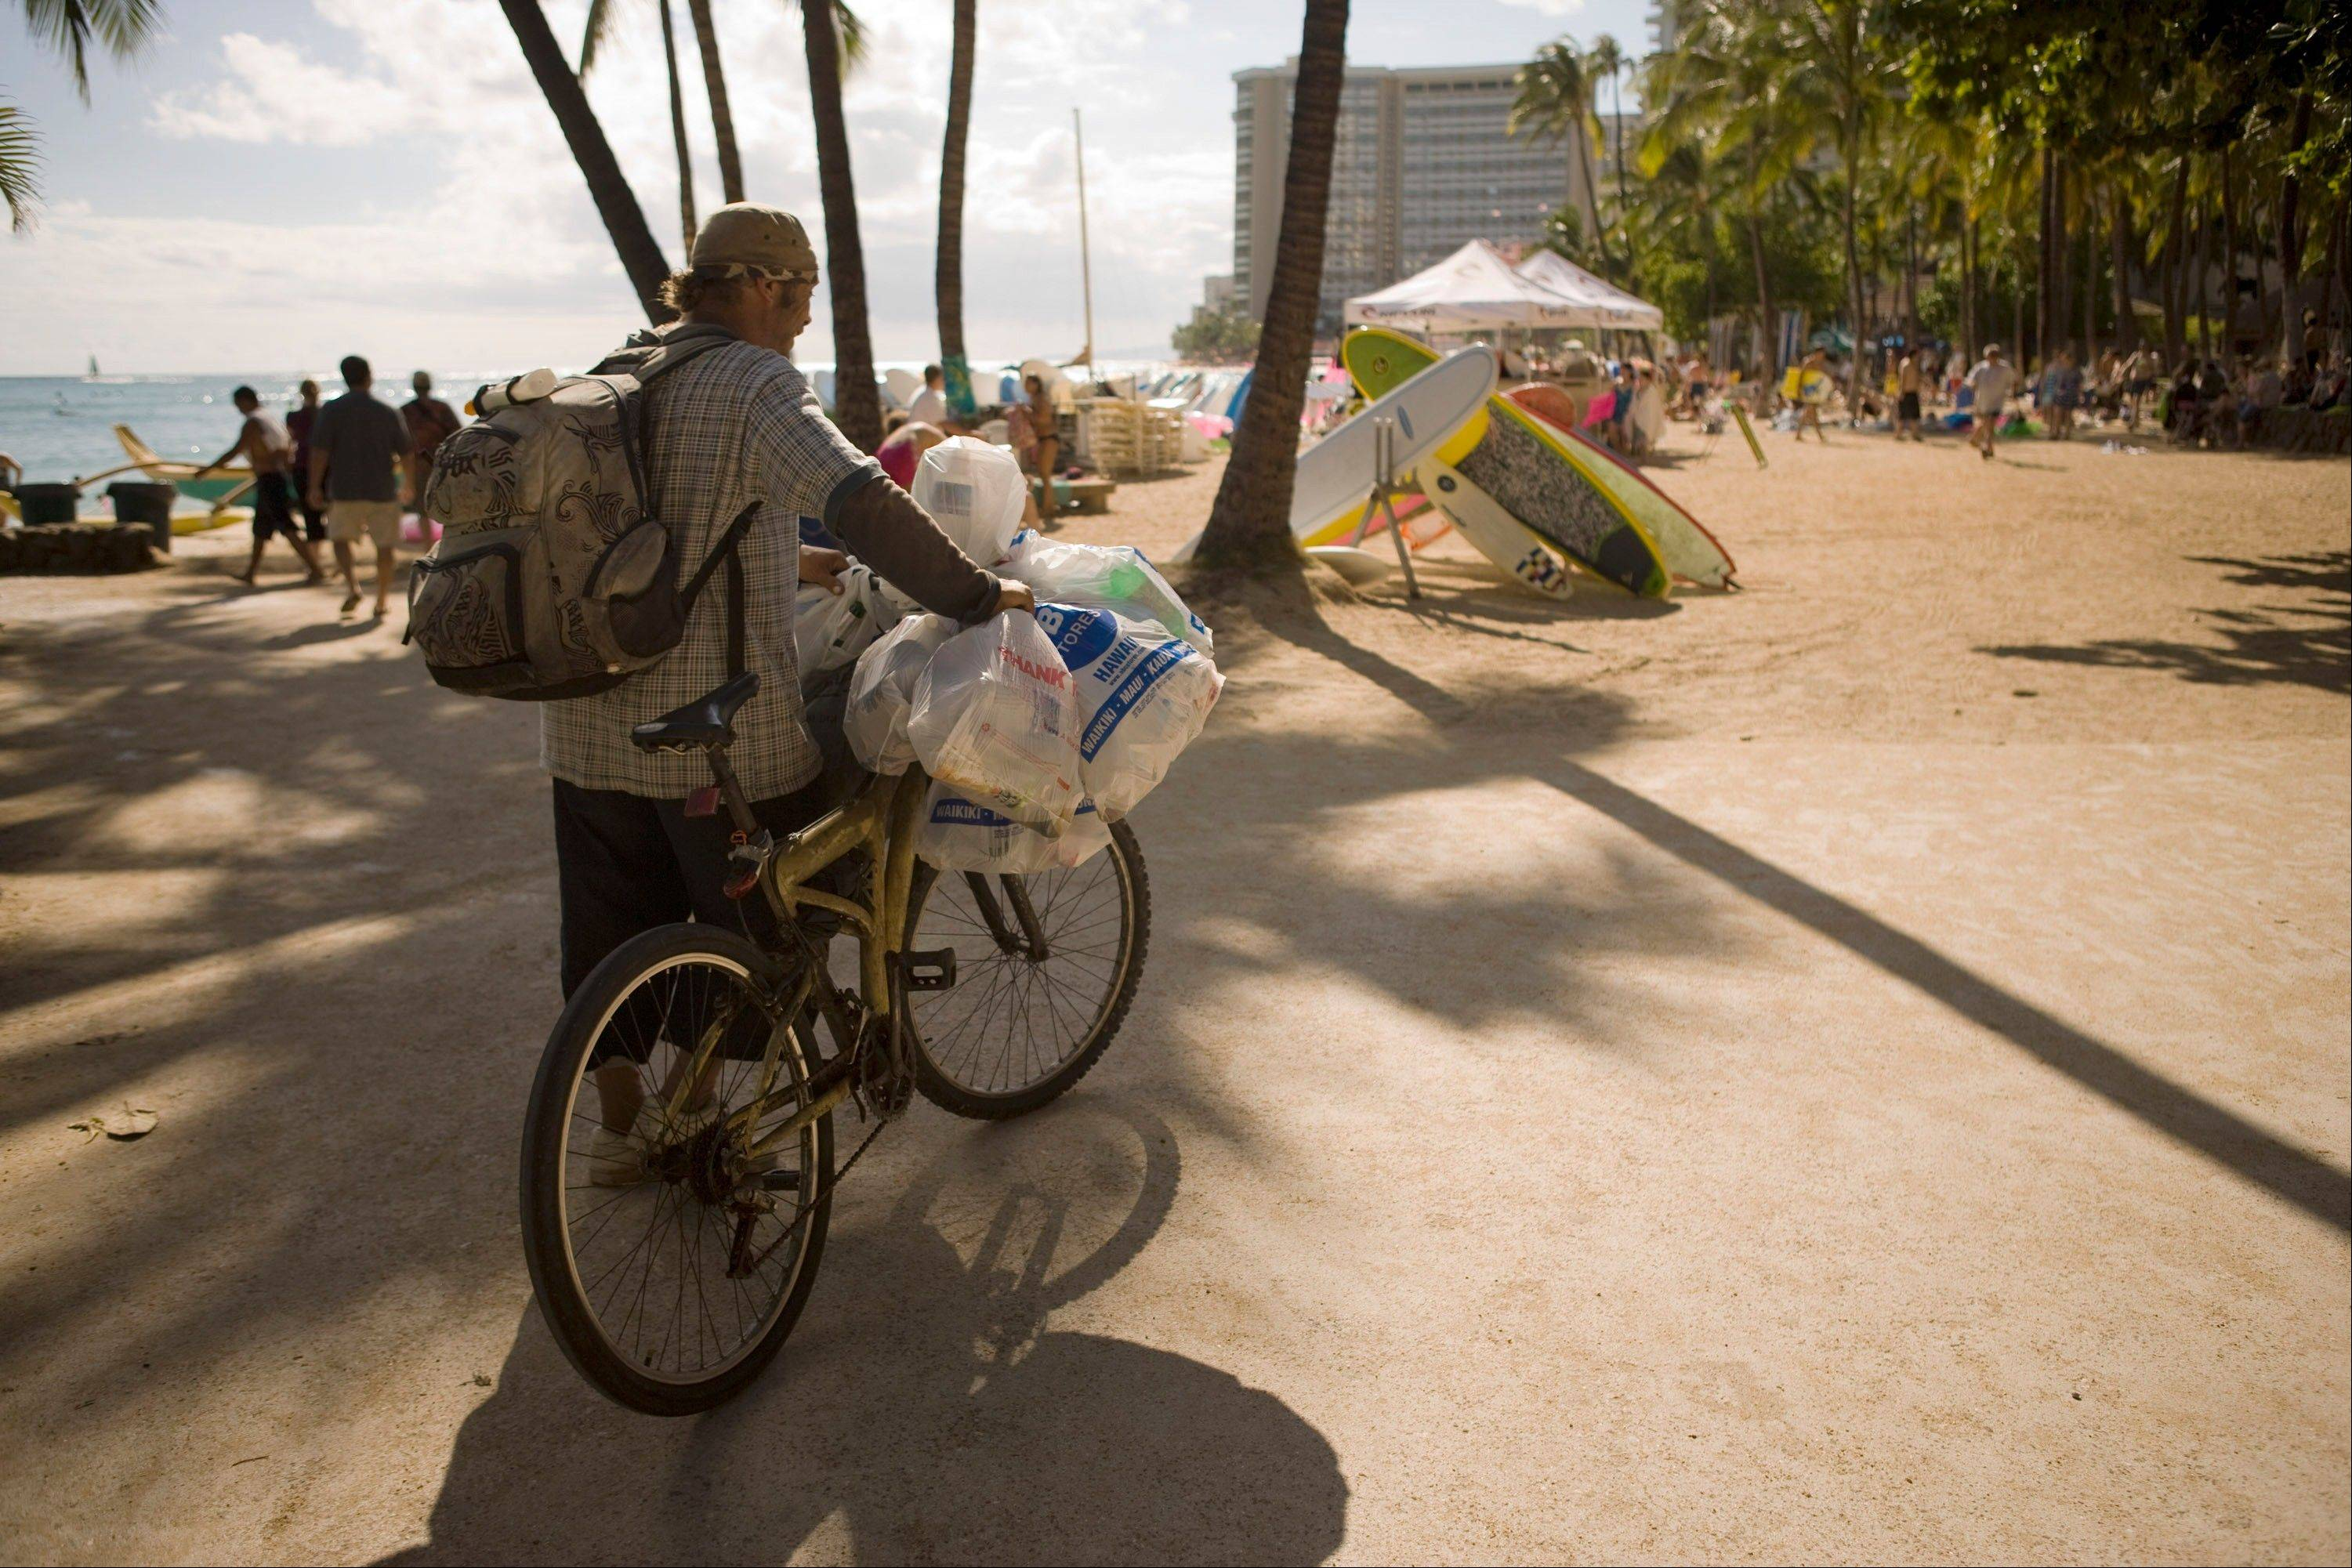 This July 12, 2010 file photo shows a homeless man who goes by the name Guy West collecting cans on Waikiki Beach, Monday, in Honolulu. Homelessness increased 15 percent on Oahu since last year according to a recent report. A growing number of homeless are not from Hawaii but make the most of their situation by taking advantage of inviting beaches and support services. State lawmakers are struggling with the visible problem of homelessness in tourist areas and some have proposed a contentious idea to use state money to fly the homeless back to wherever they came from.